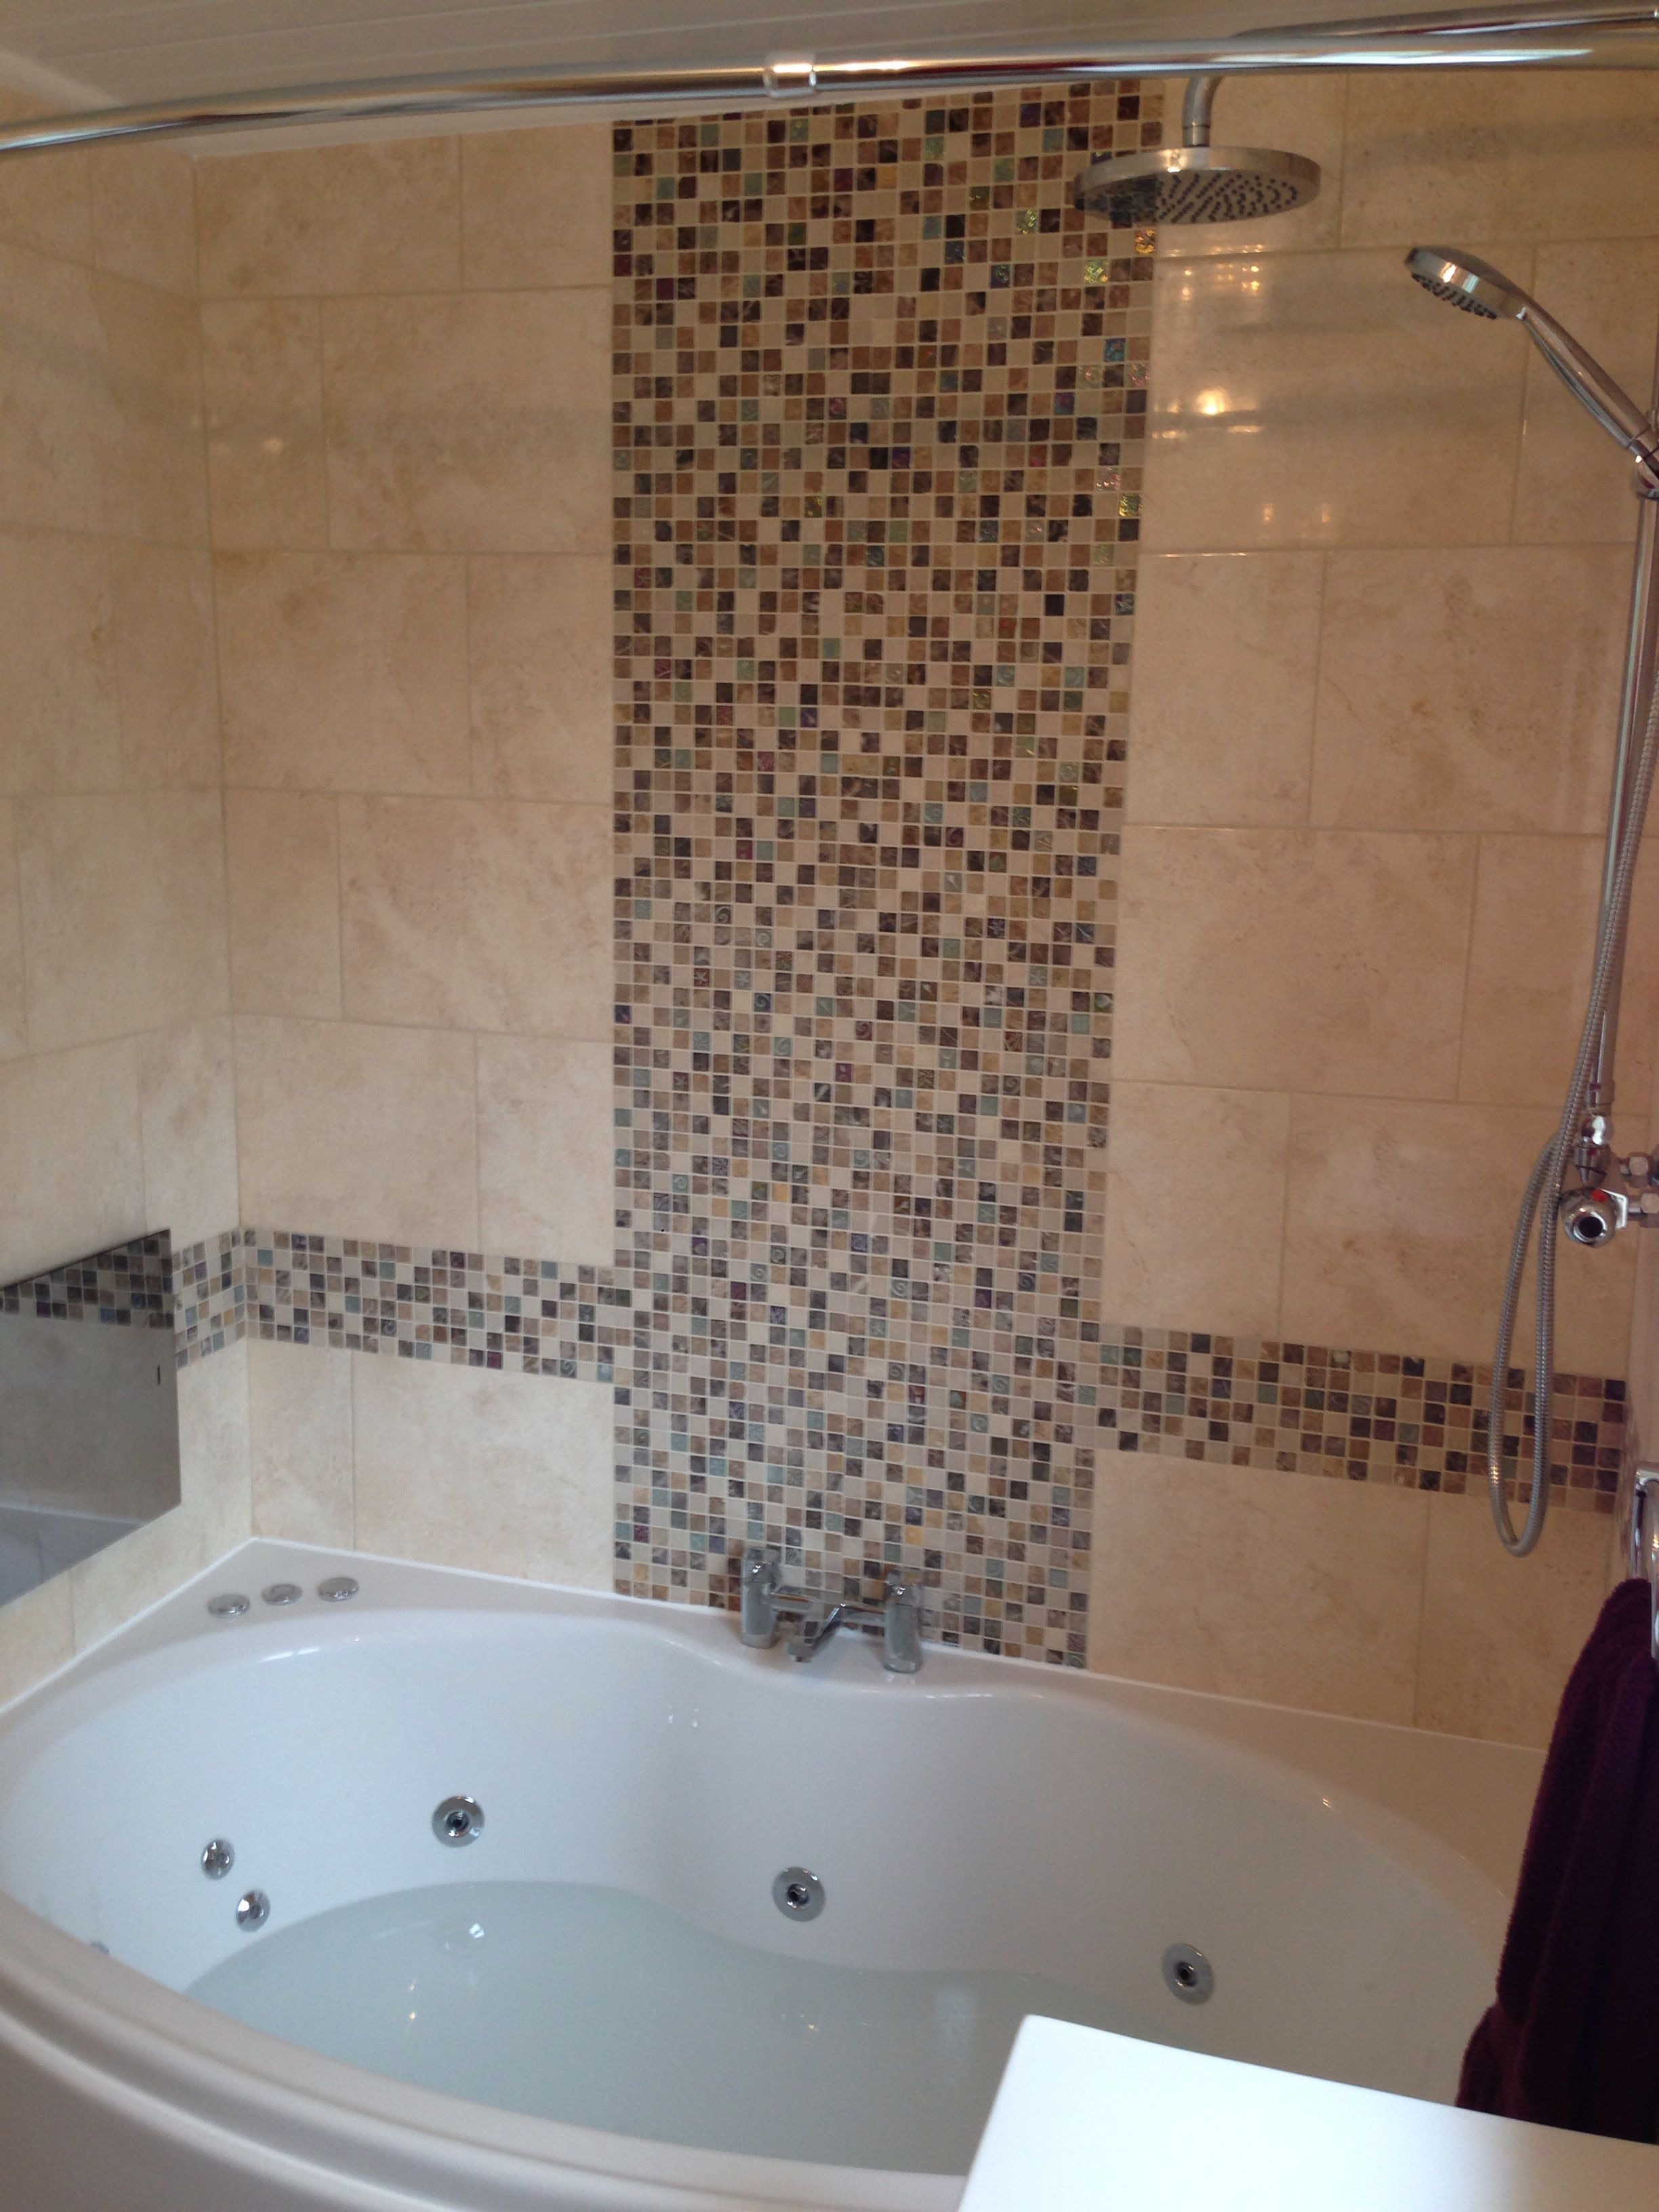 Phoenix Corsica double ended bow front bath with system 1 whirlpool ...